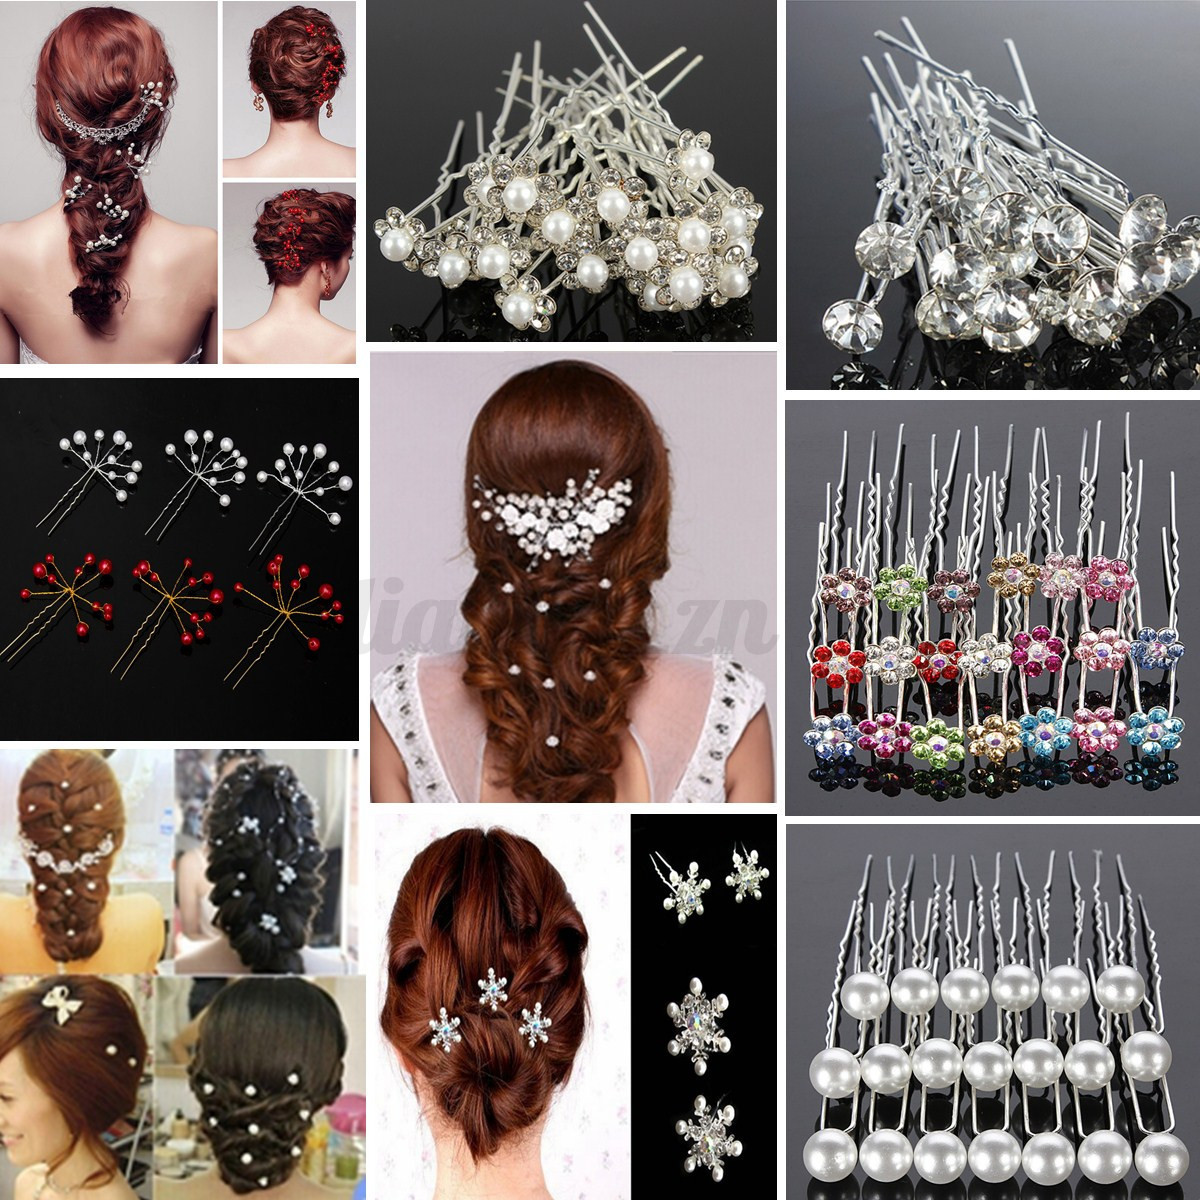 pingle cheveux cristal clip pince pic barrette strass mariage chignon 6 style ebay. Black Bedroom Furniture Sets. Home Design Ideas